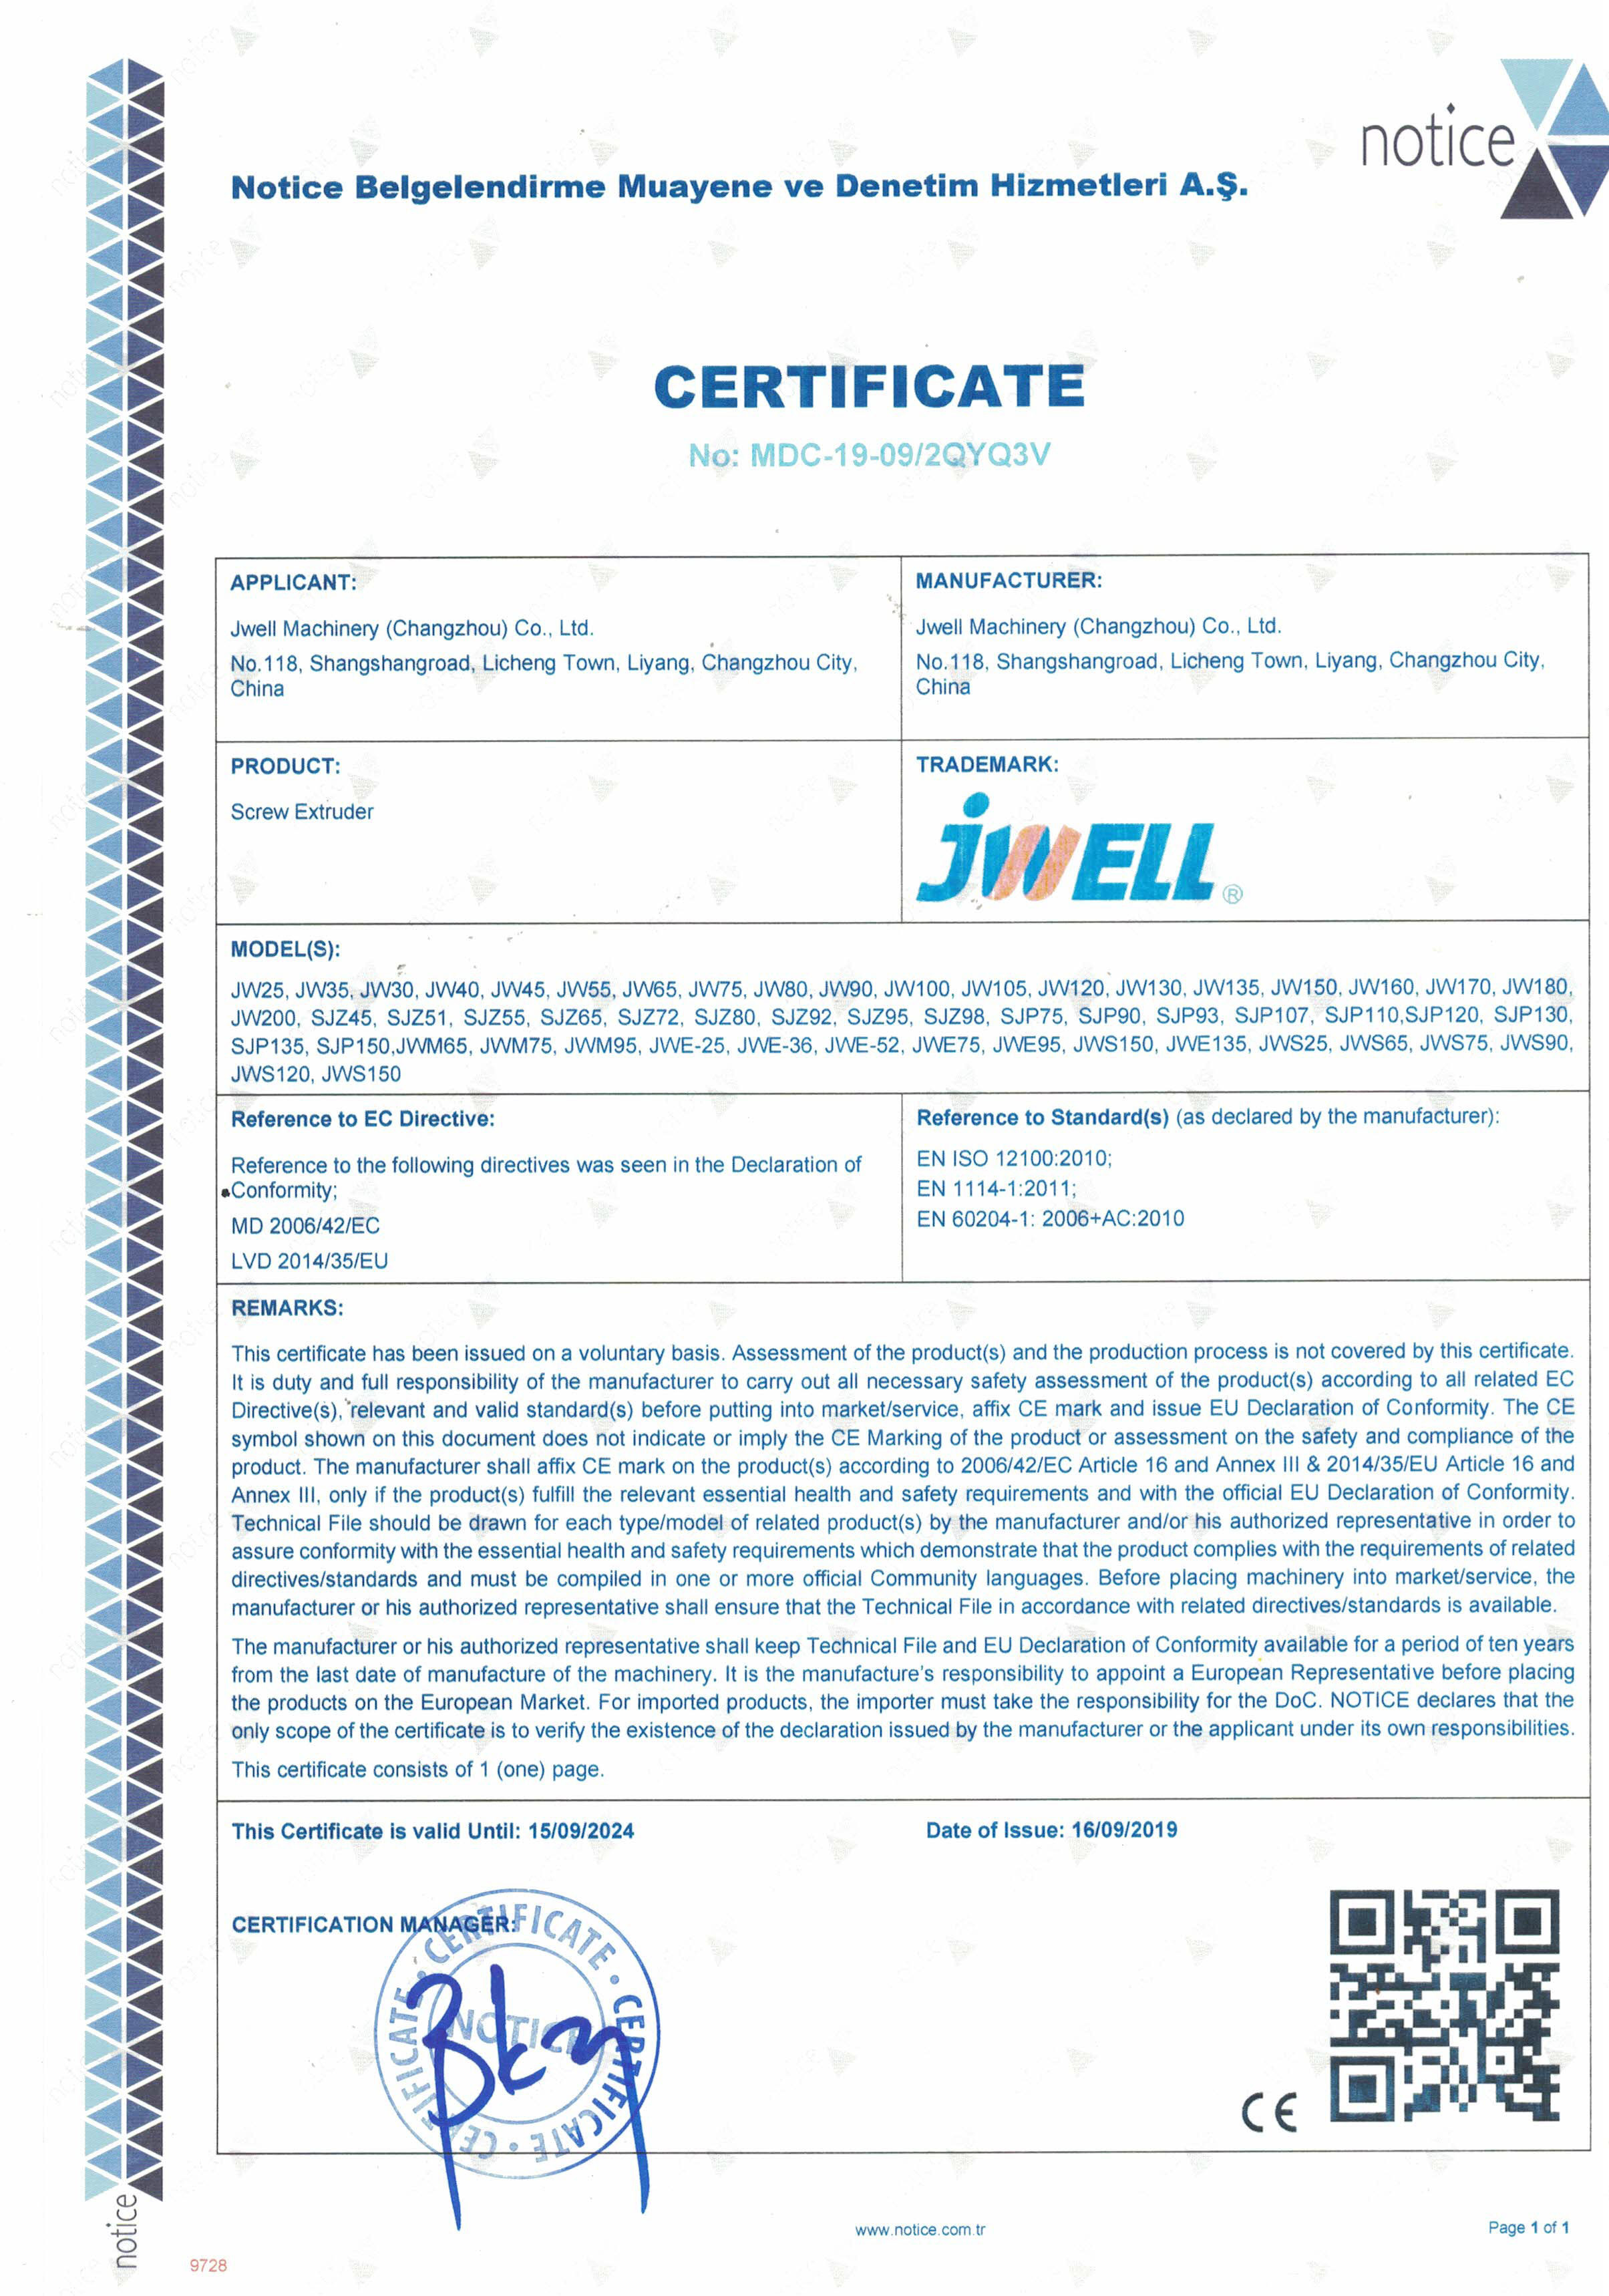 China Jwell Machinery (Changzhou) Co.,ltd. Certification